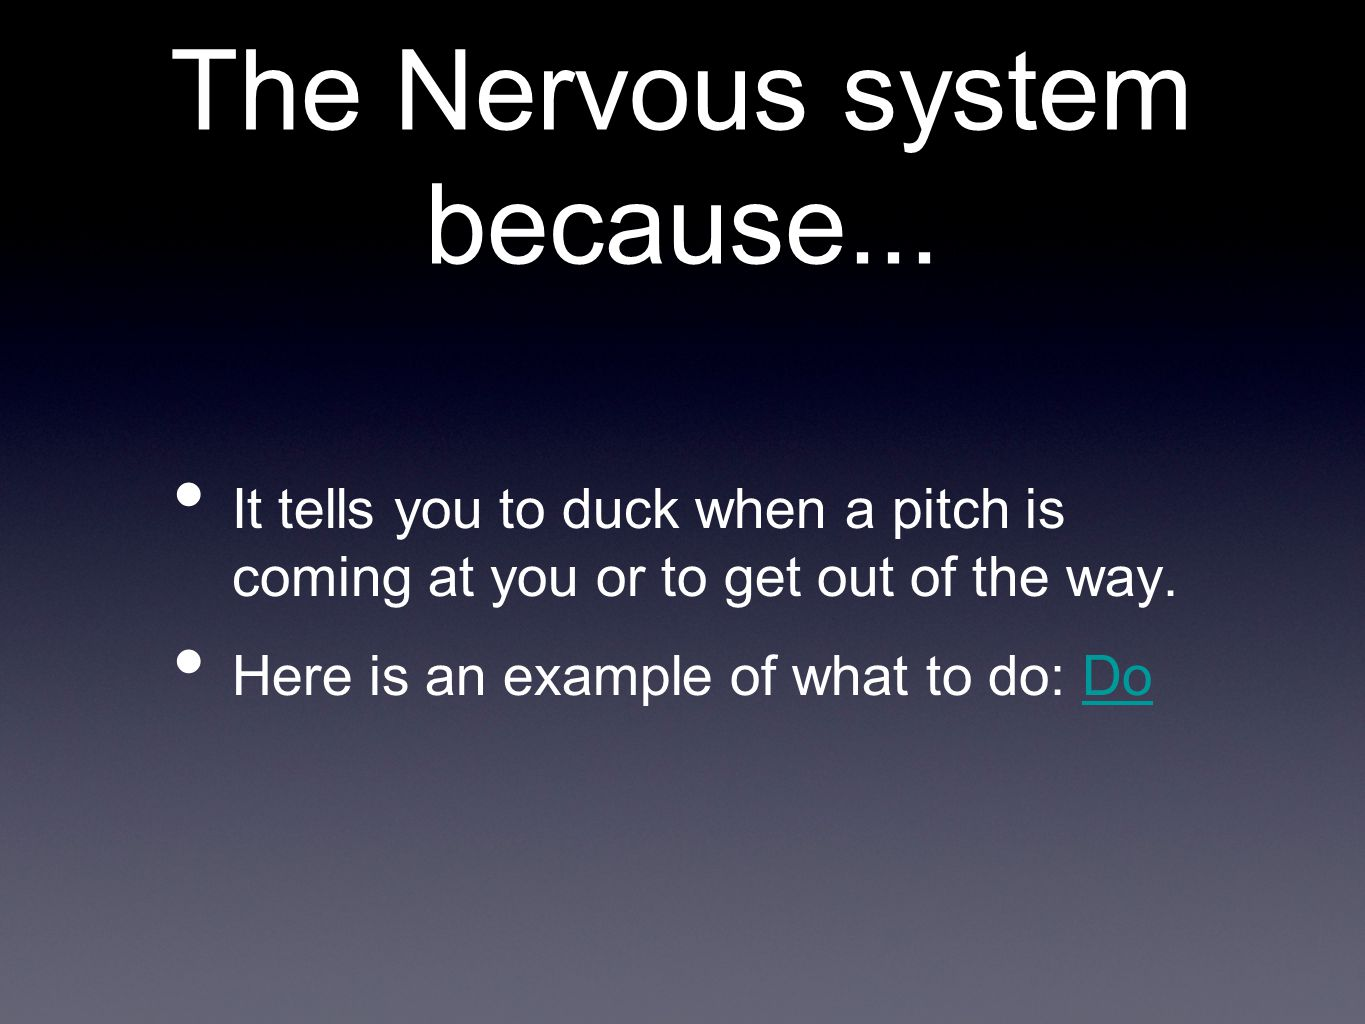 The Nervous system because... It tells you to duck when a pitch is coming at you or to get out of the way. Here is an example of what to do: DoDo